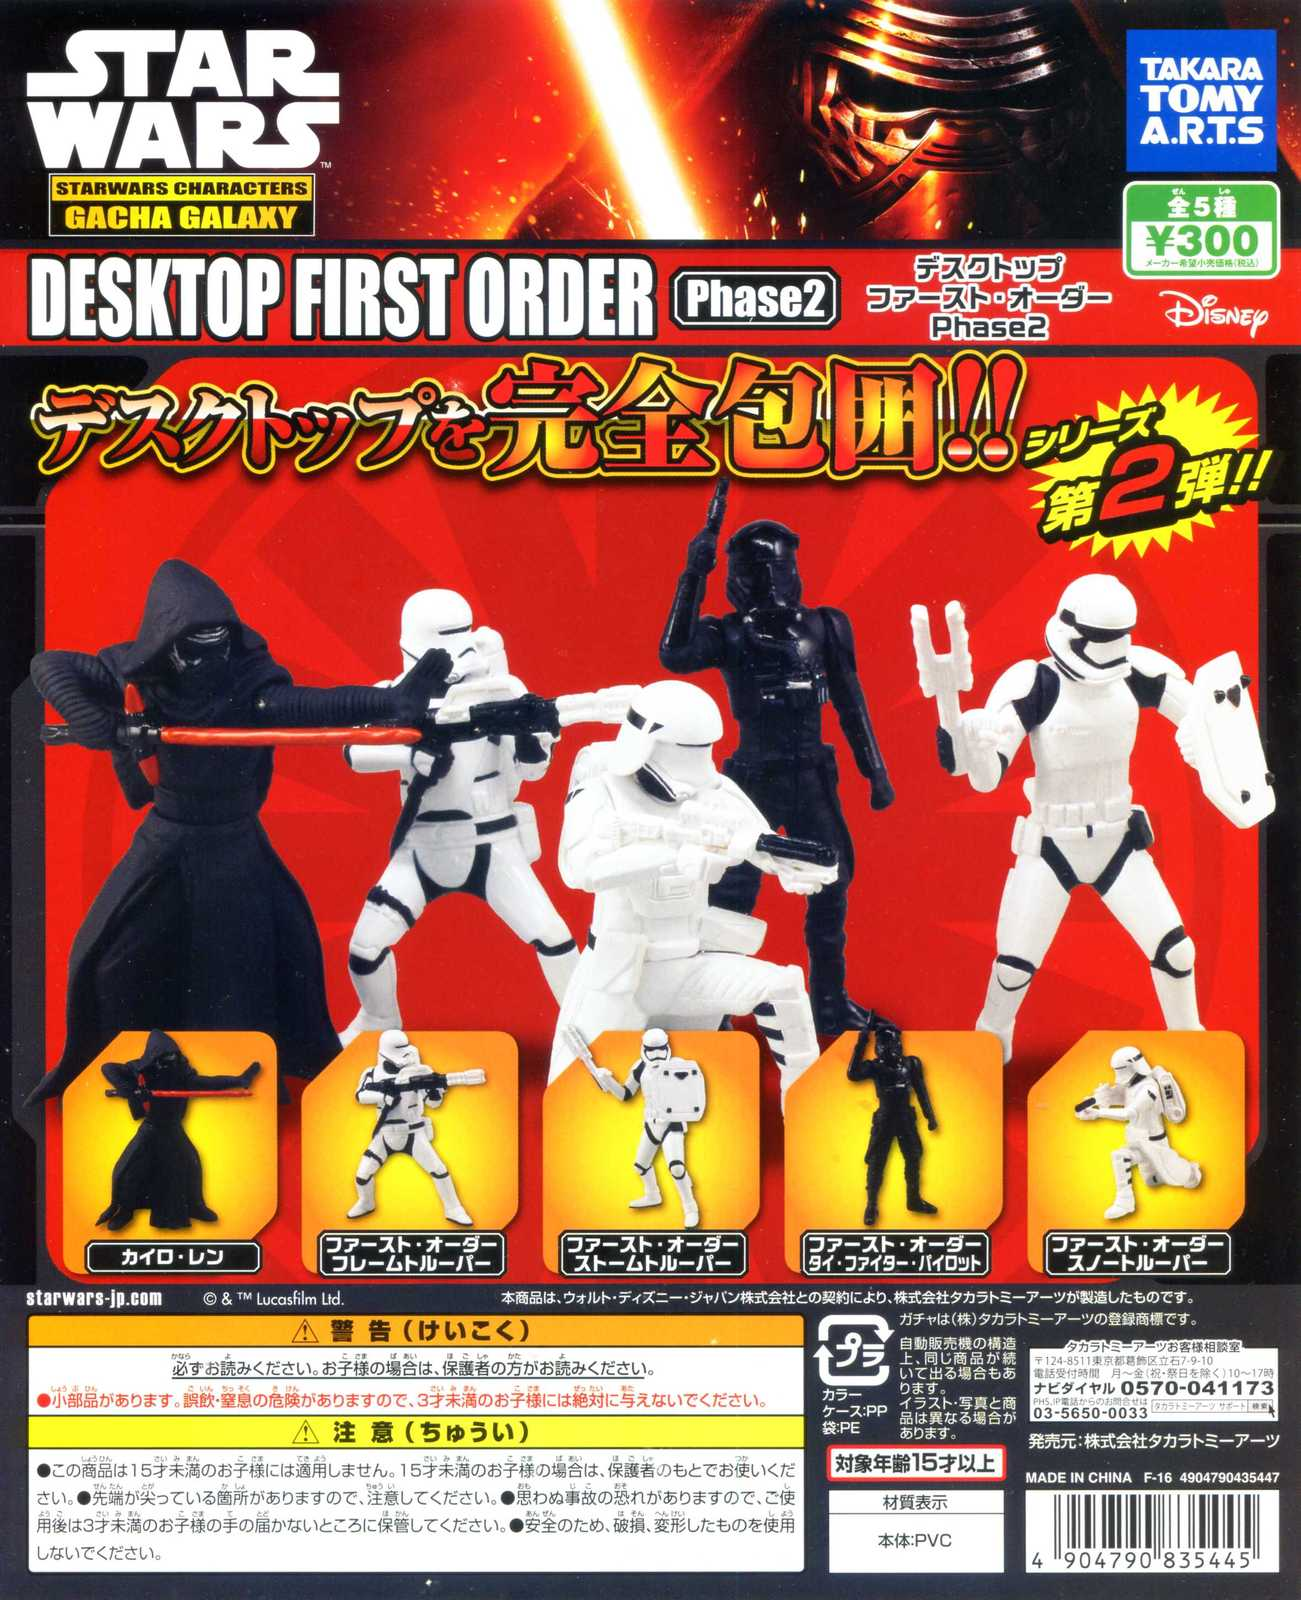 ARTS STAR WARS Characters GACHA GALAXY DESKTOP FIRST ORDER Phase 2 Stormtrooper